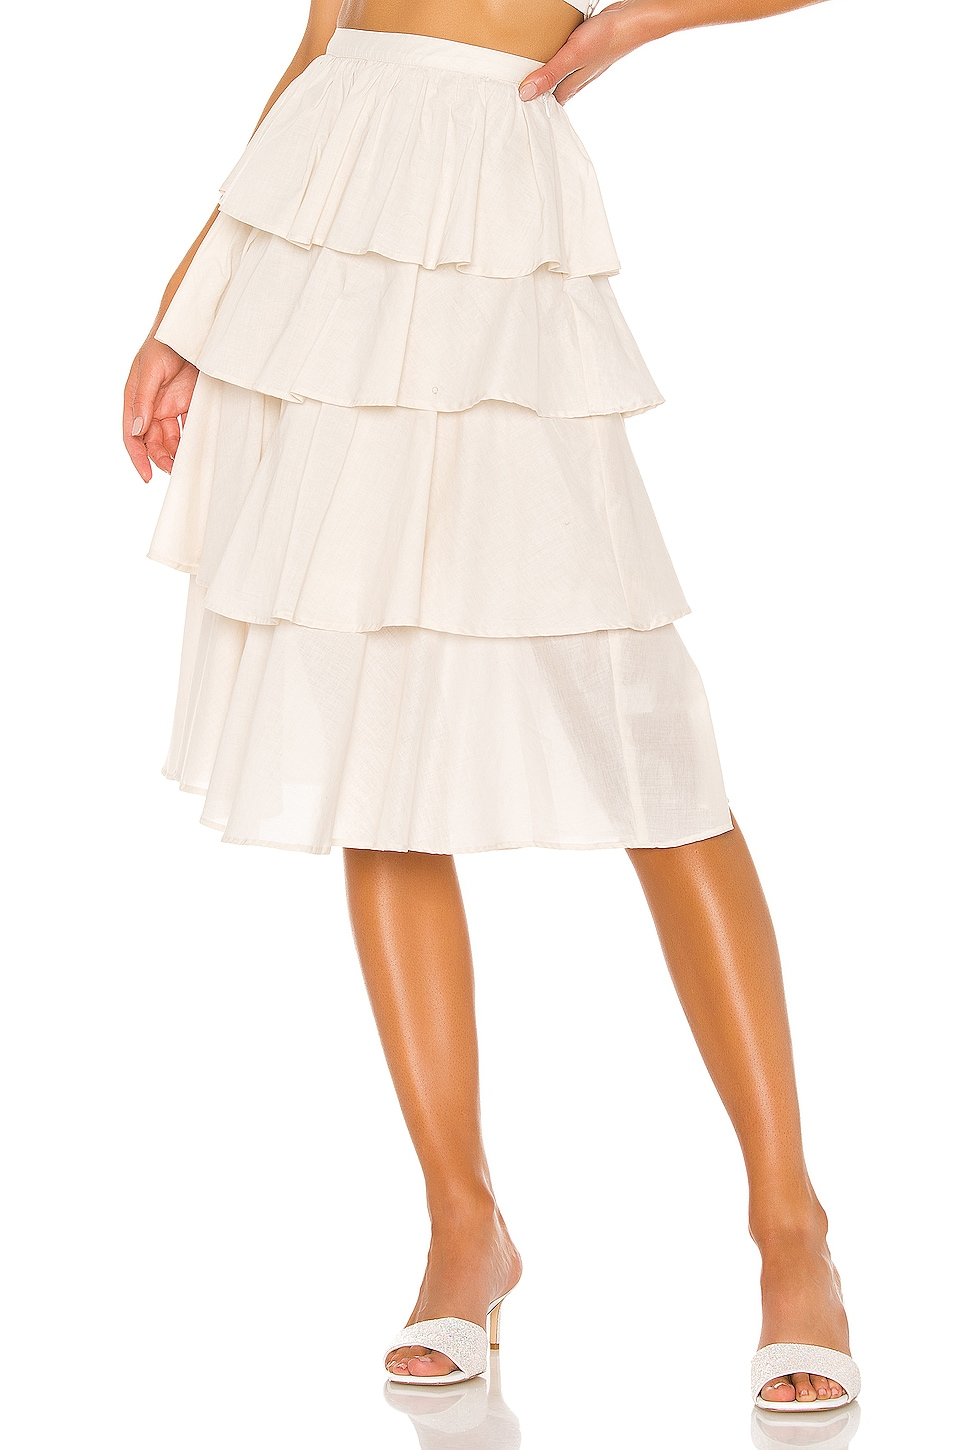 L'Academie The Chloe Skirt in Beige